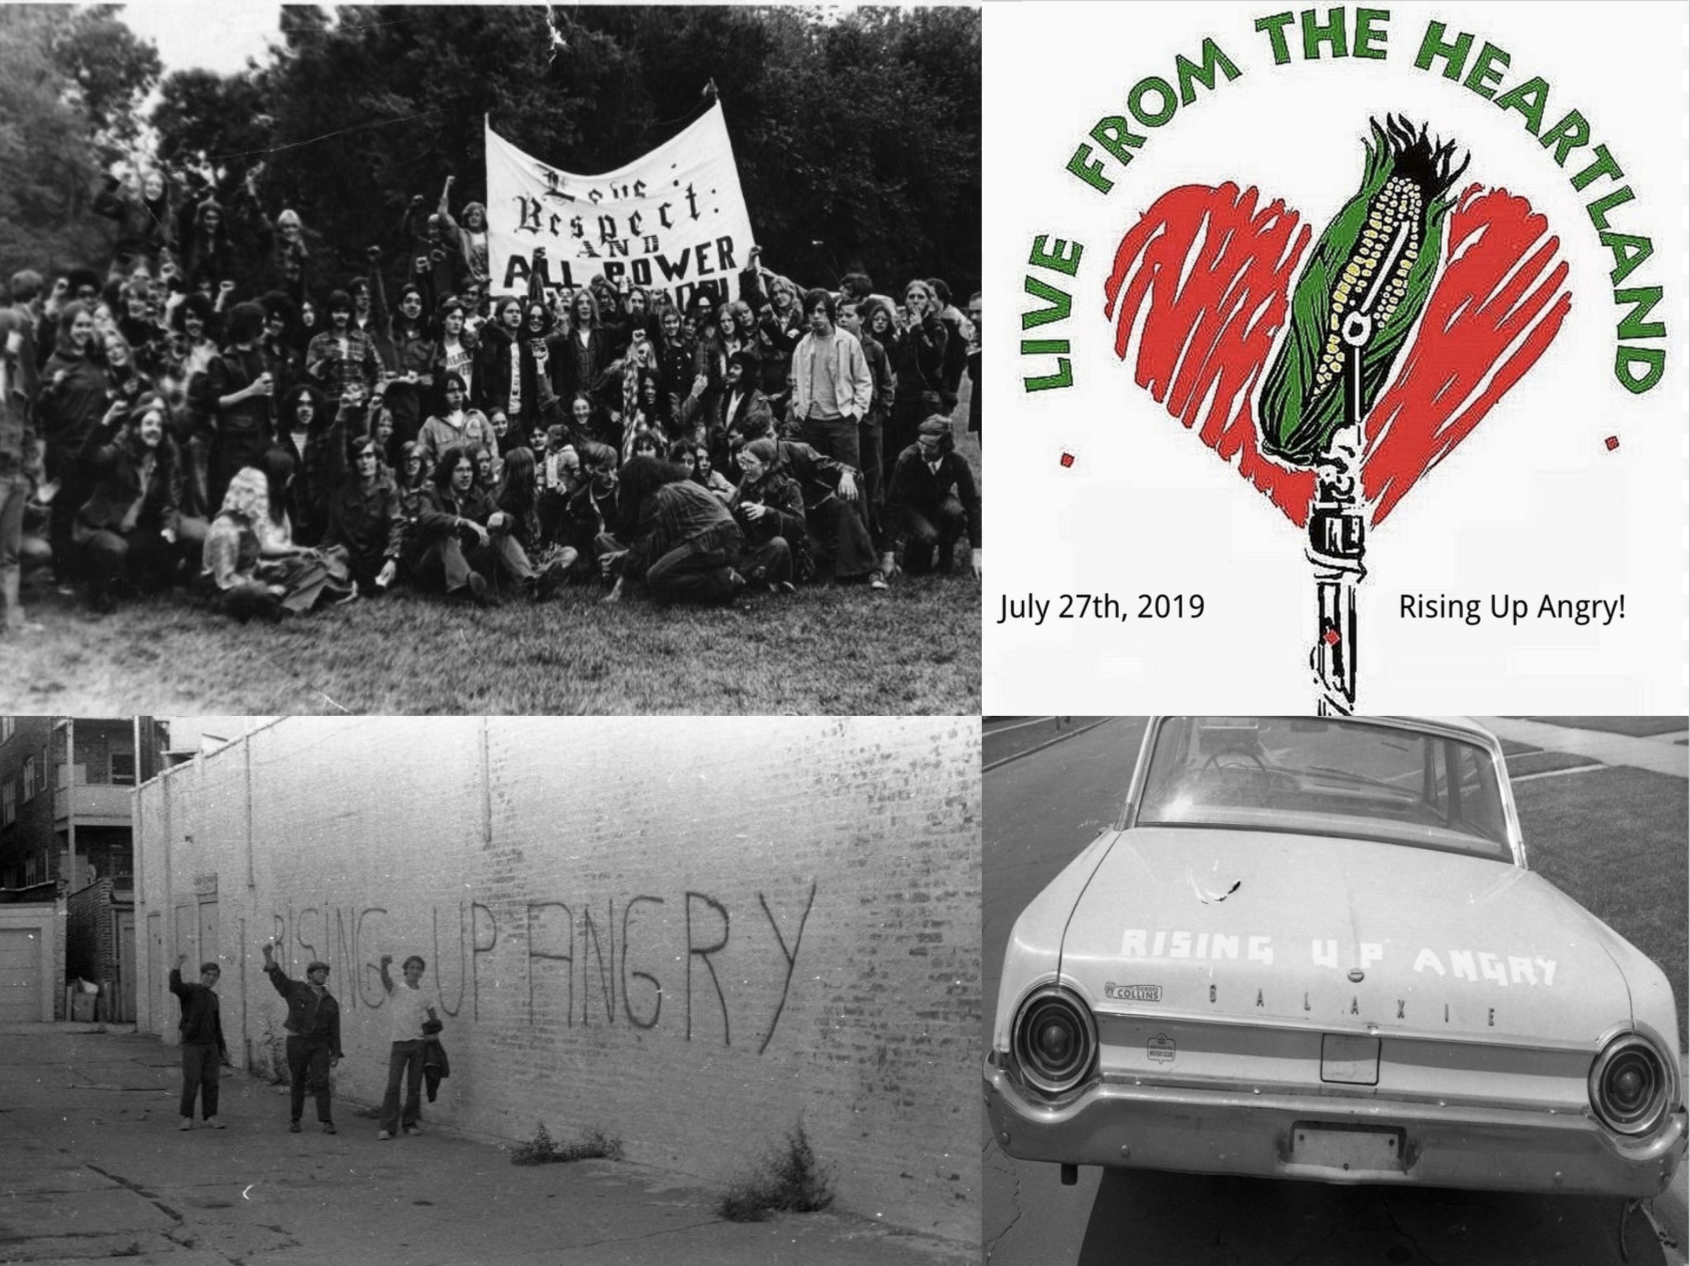 JuLY 27th, 2019 - Co-Hosts: Michael James, Katy Hogan, & Thom ClarkThis episode is in celebration of 50 years since the founding of Chicago based activist organization Rising Up Angry.Engineer: Jake Levy